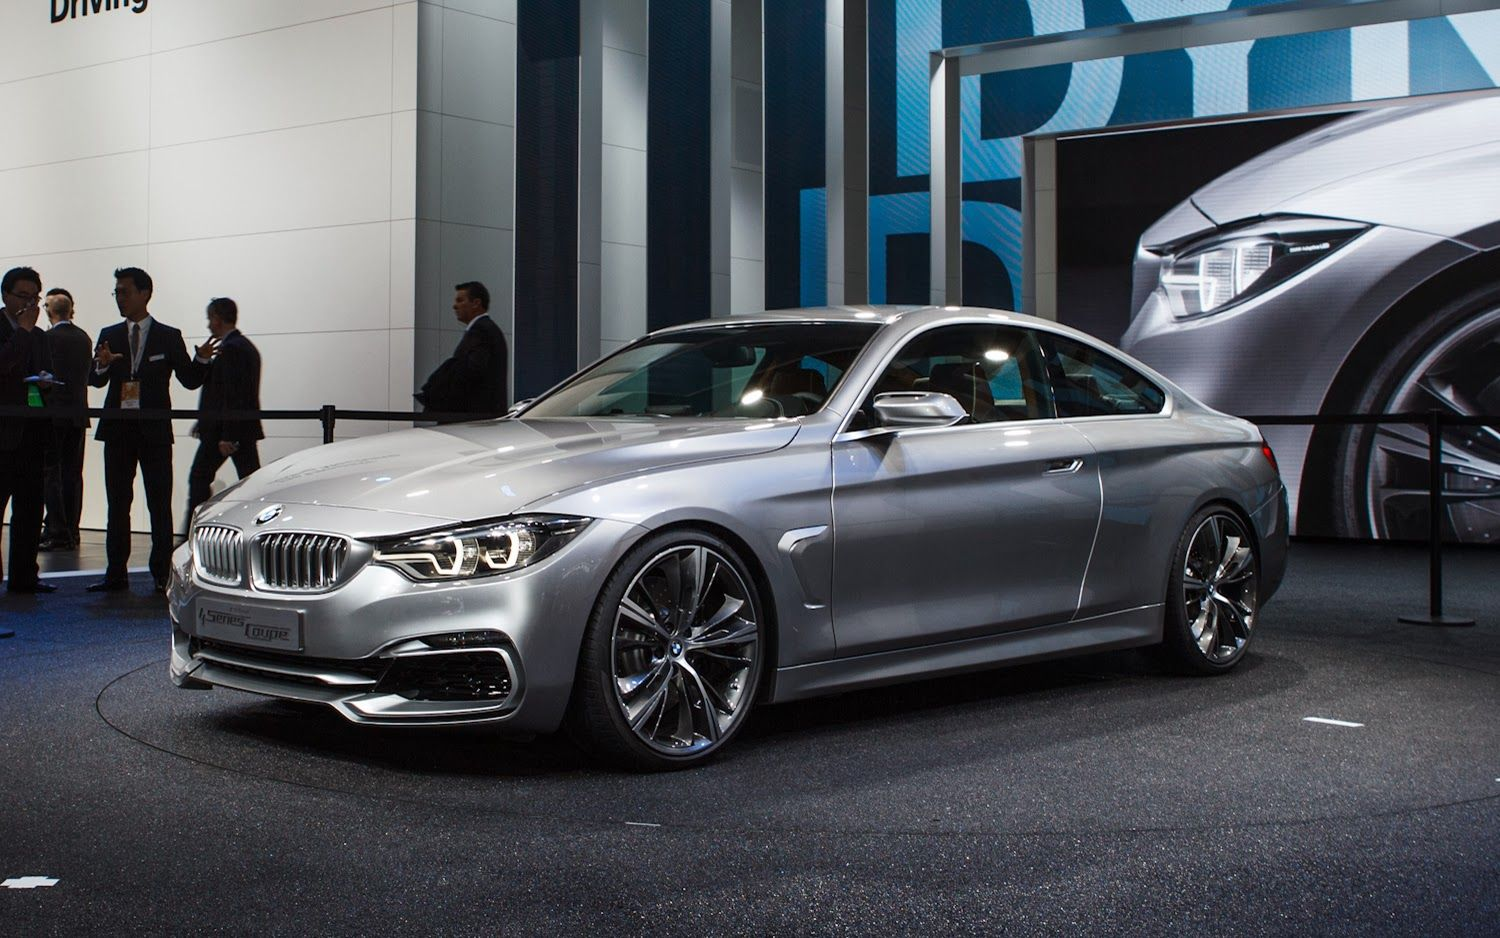 Bmw Coupe 4 Series 2014 With Images Bmw 4 Series Bmw Concept